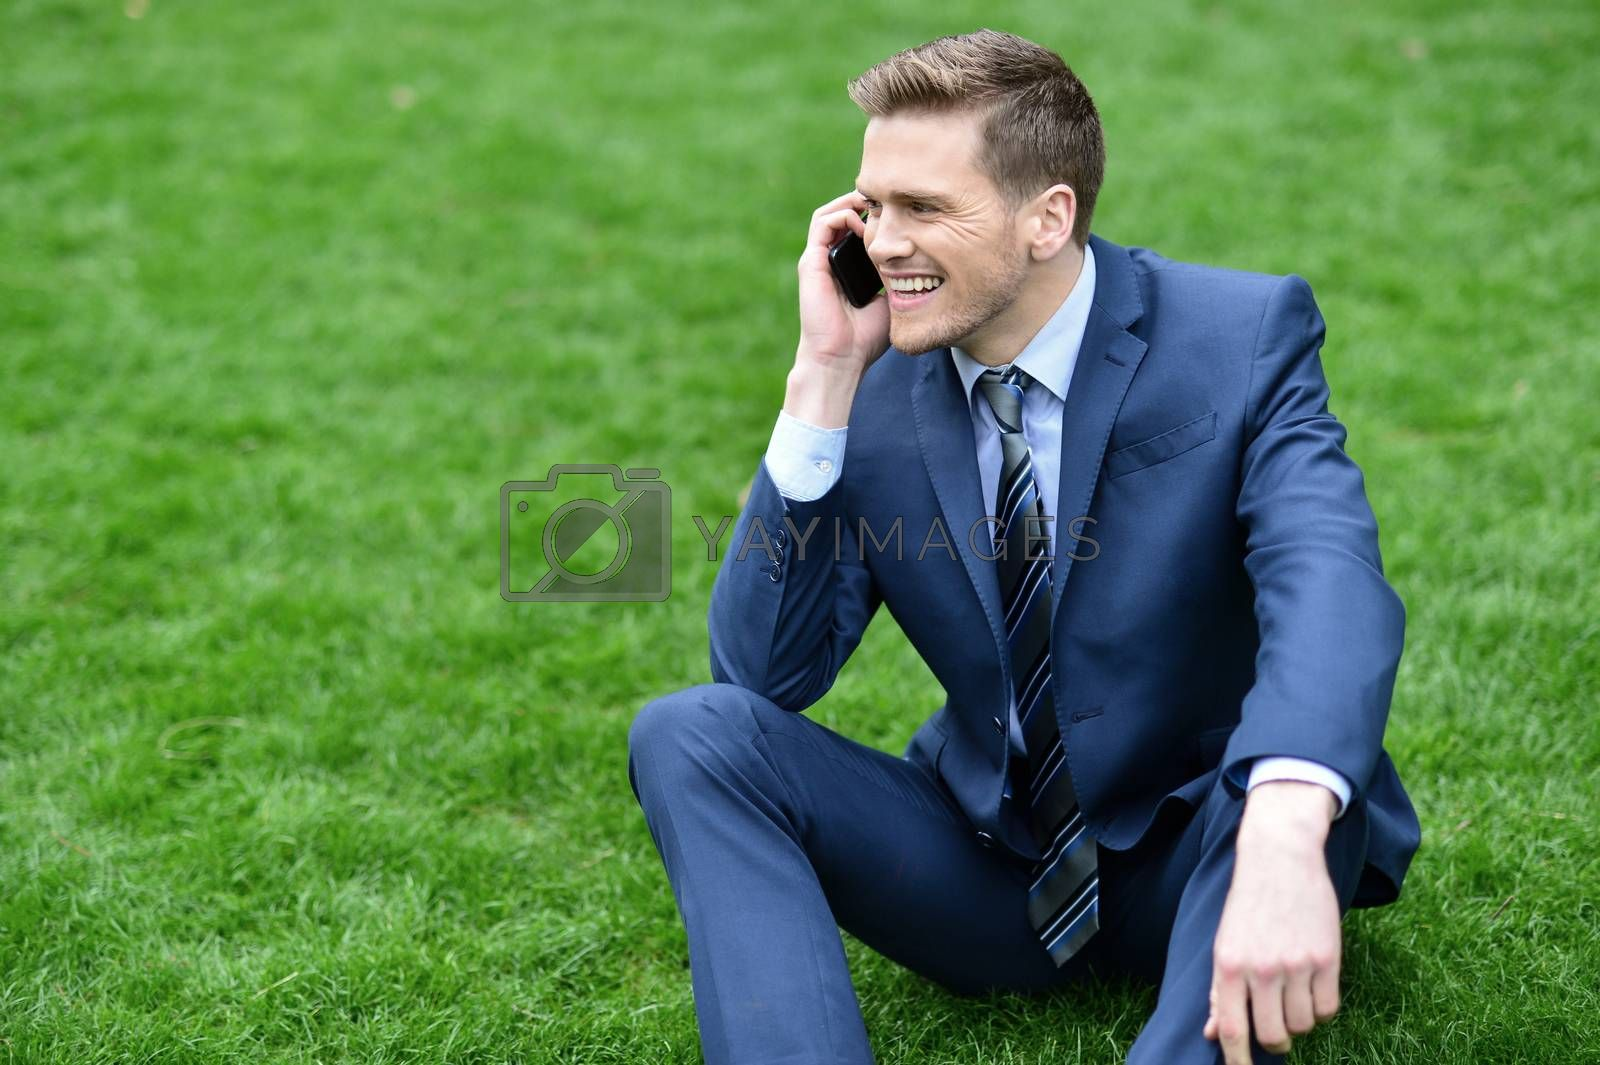 Royalty free image of Businessman using mobile phone in park by stockyimages